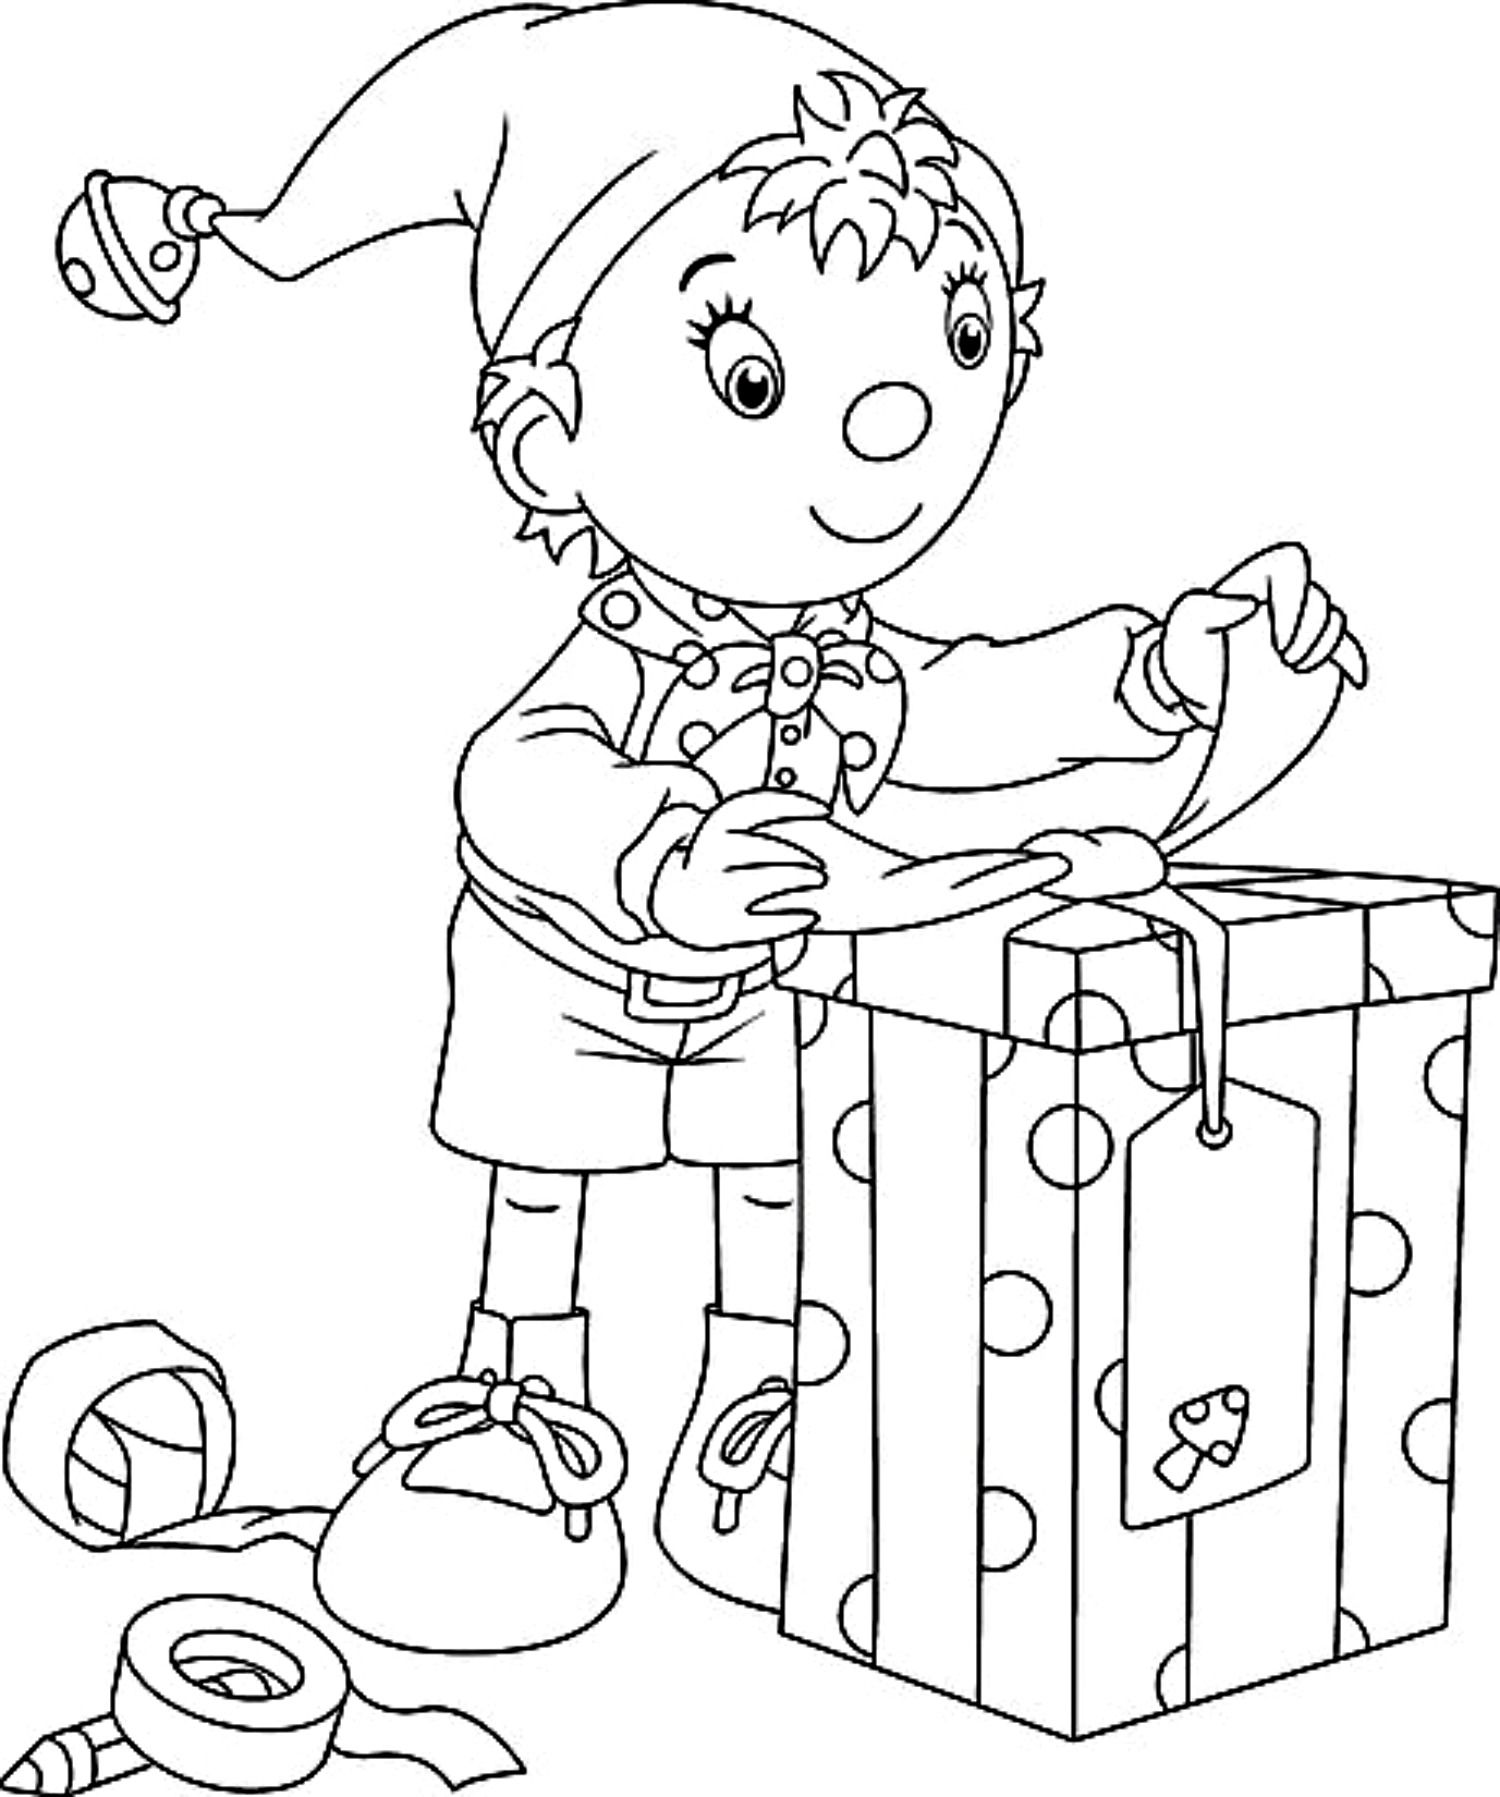 FREE Elf on the Shelf Coloring Pages - I Heart Naptime | 1797x1500